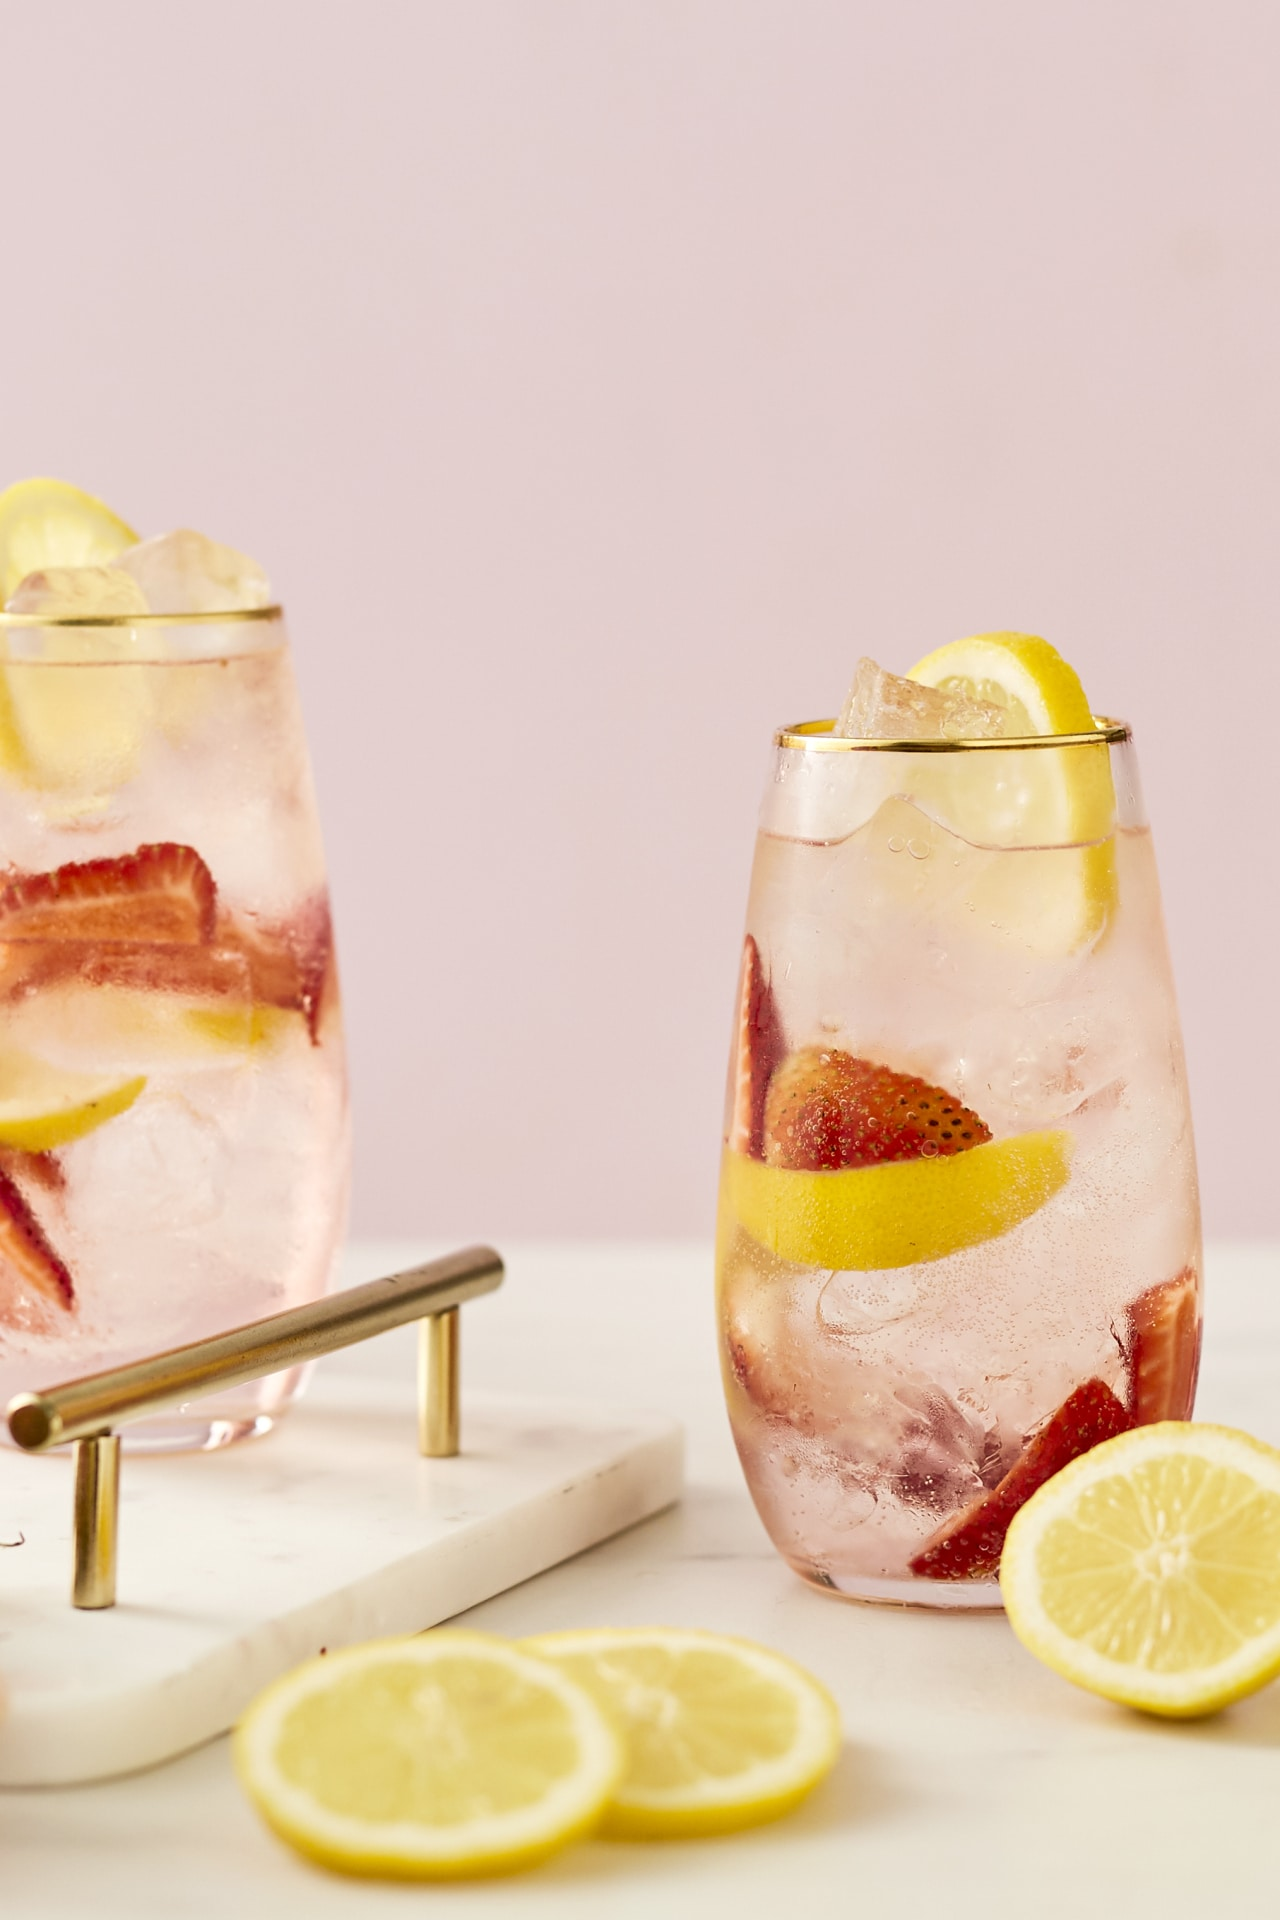 This is how to make a pink gin and tonic